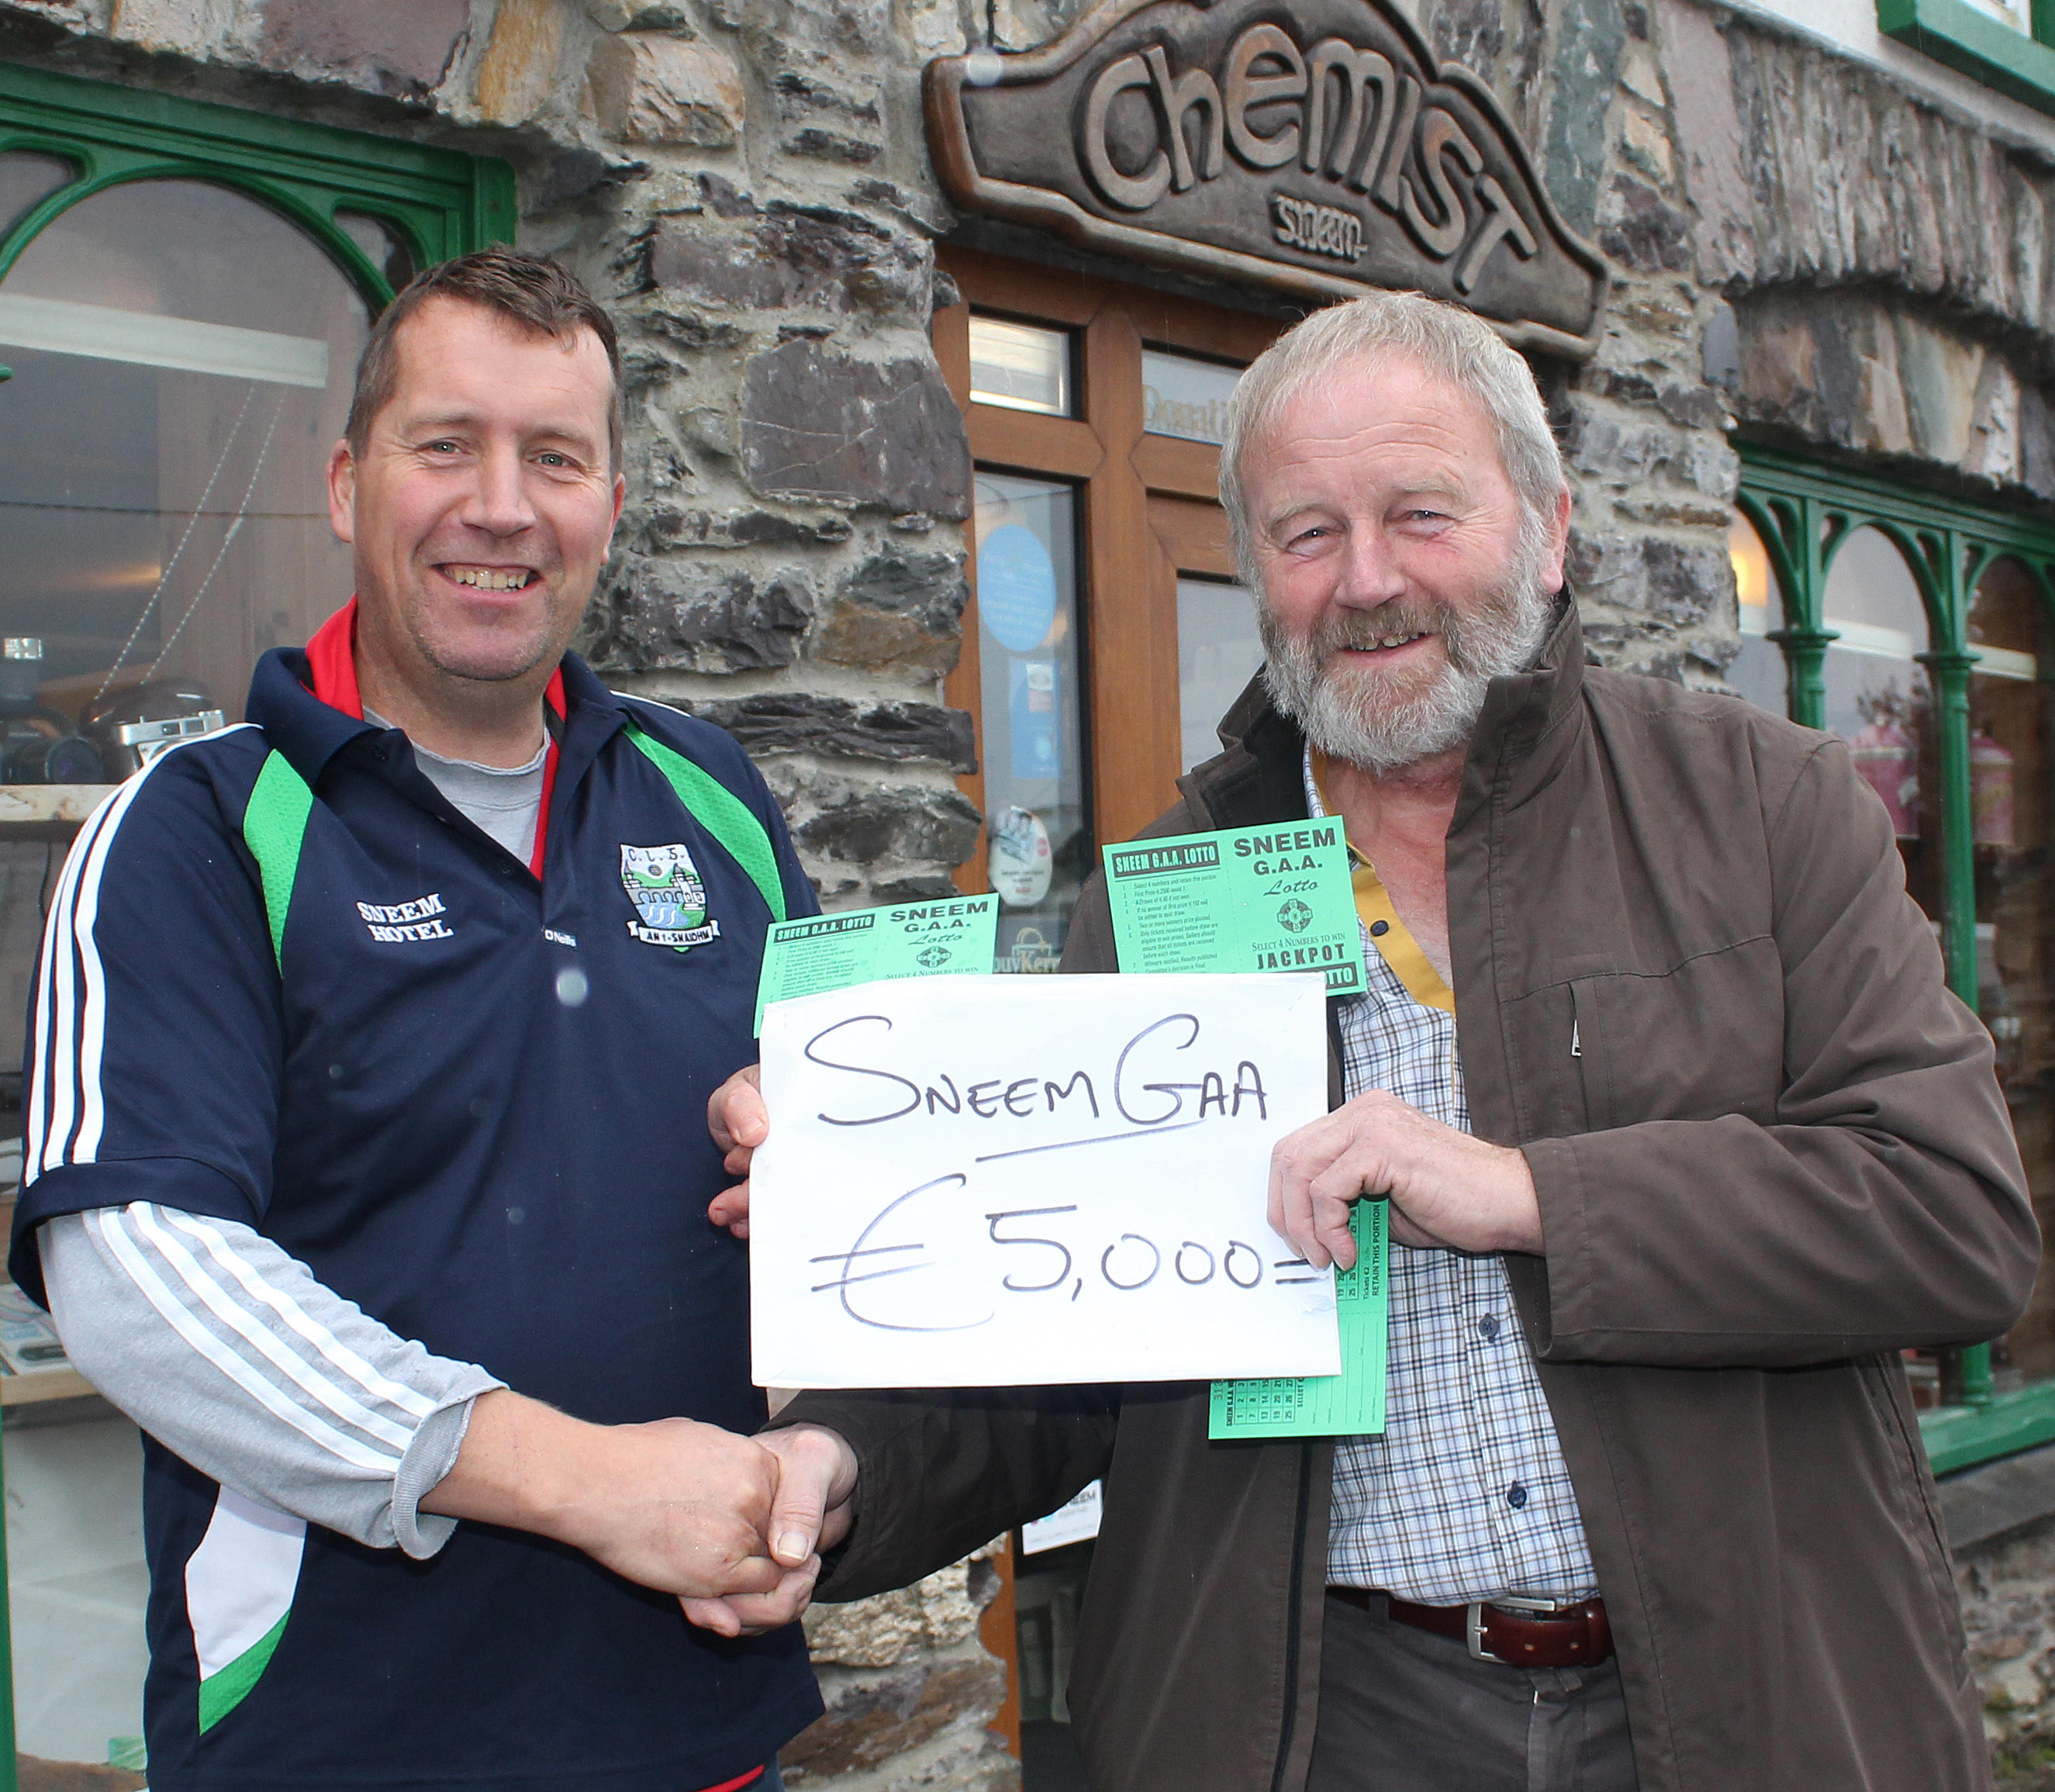 Keran Burns Chair of Sneem GAA Club presents George O'Neill with €5,000 from Sneem GAA Lotto Draw